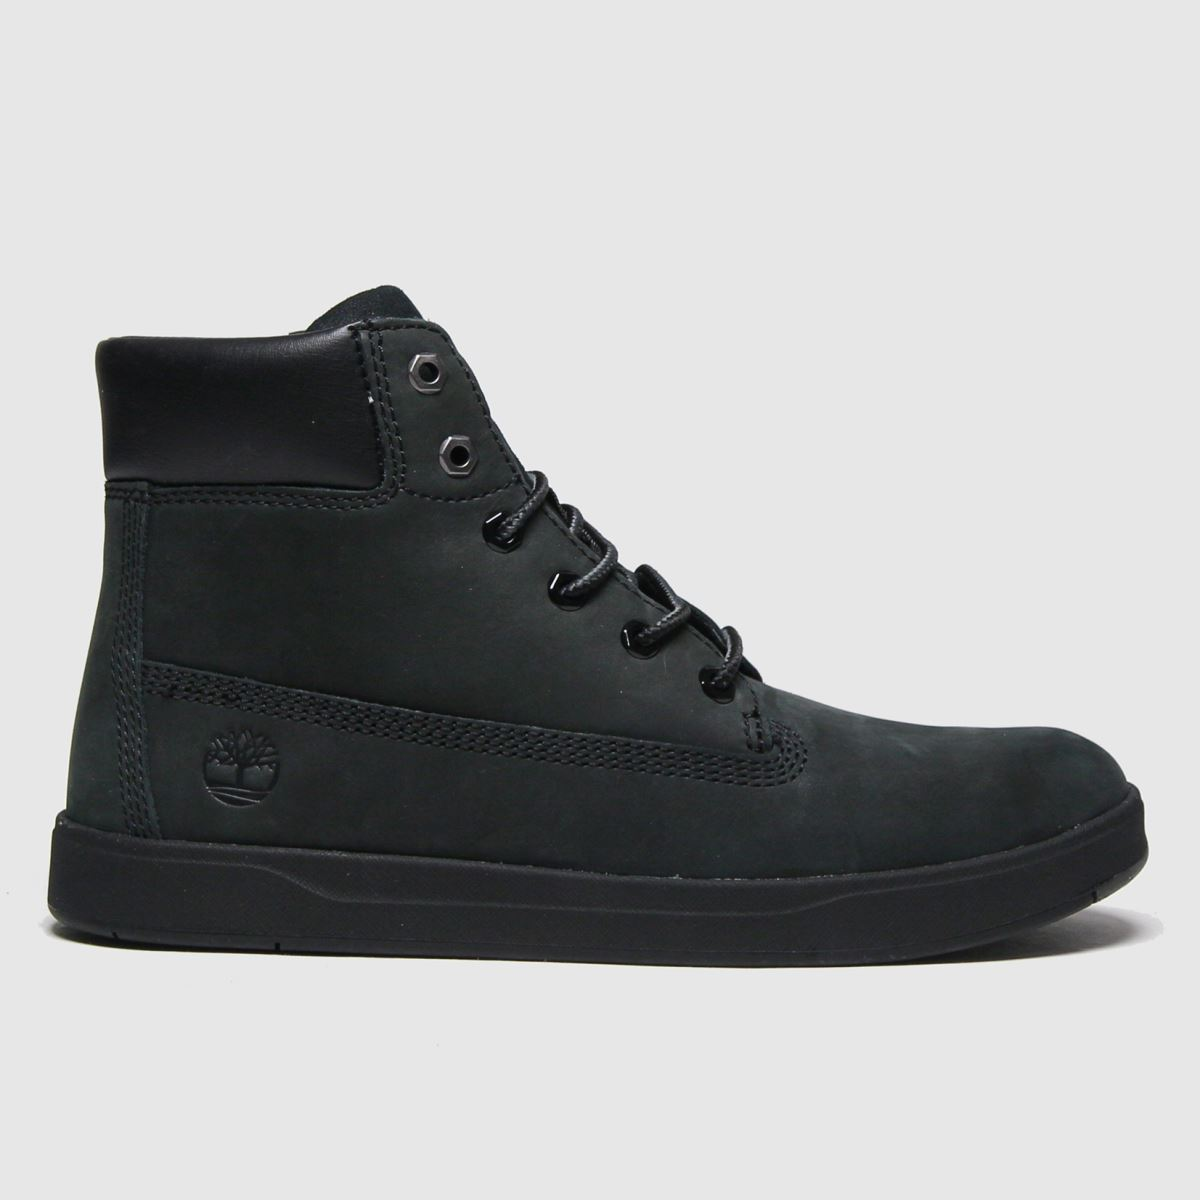 Timberland Black Davis Square Boots Youth